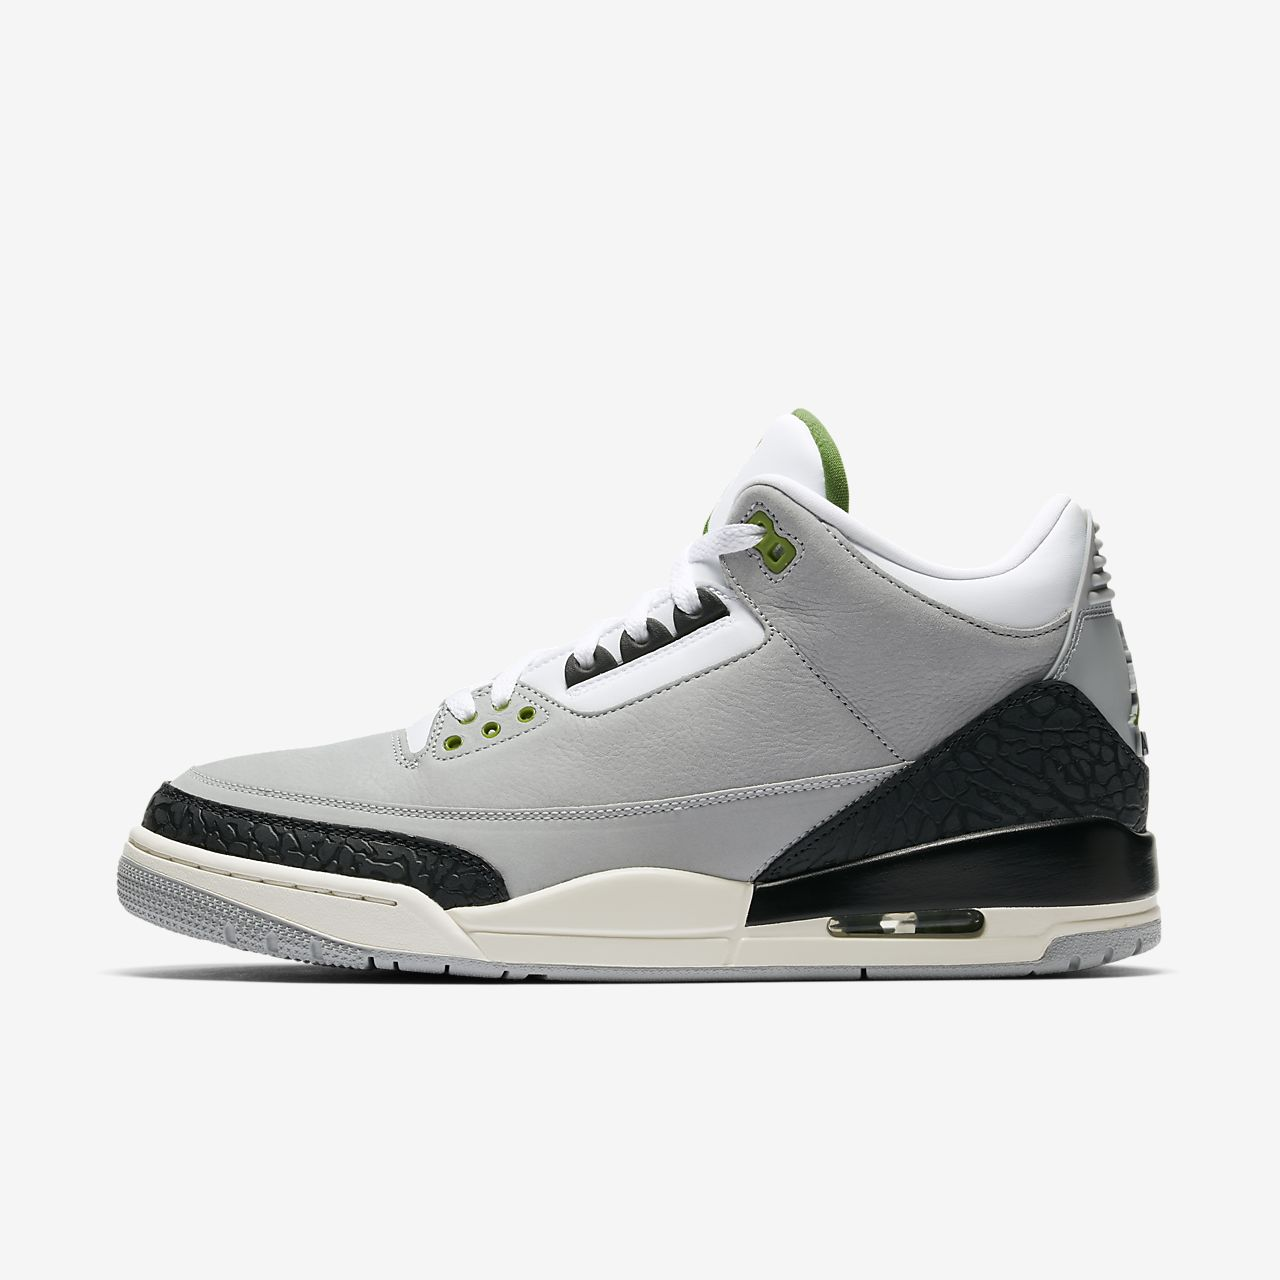 12e71b35d68f Air Jordan 3 Retro Men s Shoe. Nike.com AU